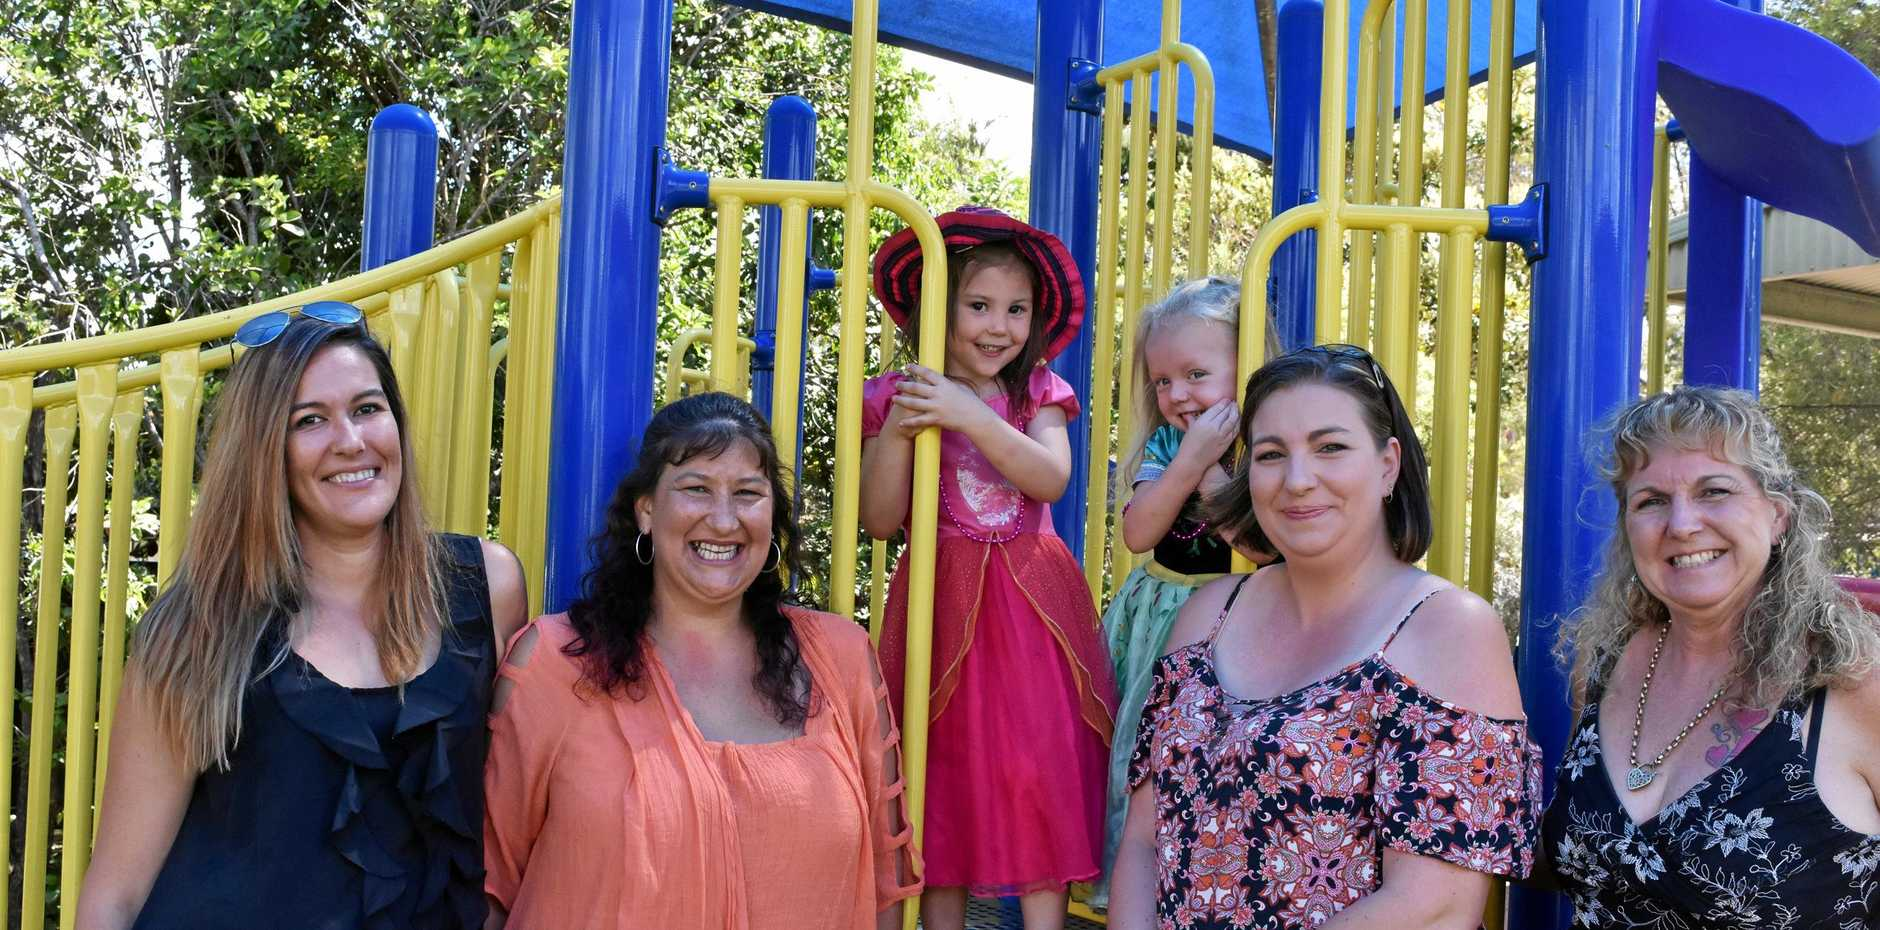 Members of the Gunalda and District Kindergarten Association Inc committee and friends are keen to see involvement from the community grow. From left Rebecca Tweedale (playgroup co-ordinator), Bronwyn McDowell (teacher), Leura Tweedale, Chloe Hawksfield, Donna Hawksfield (VP) and Mandee (Samantha) Harvey (President).